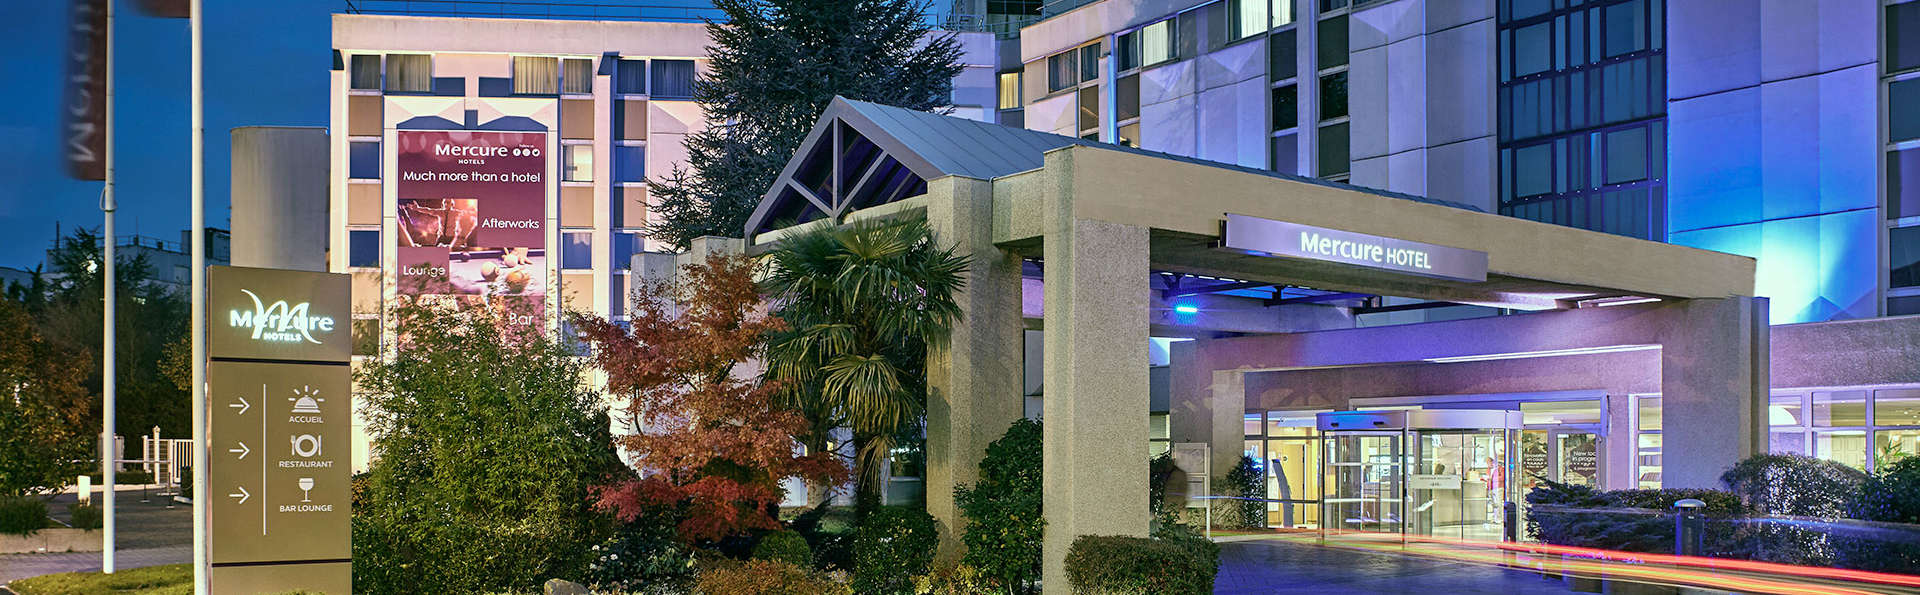 Mercure Paris Roissy CDG - EDIT_NEW_Front.jpg